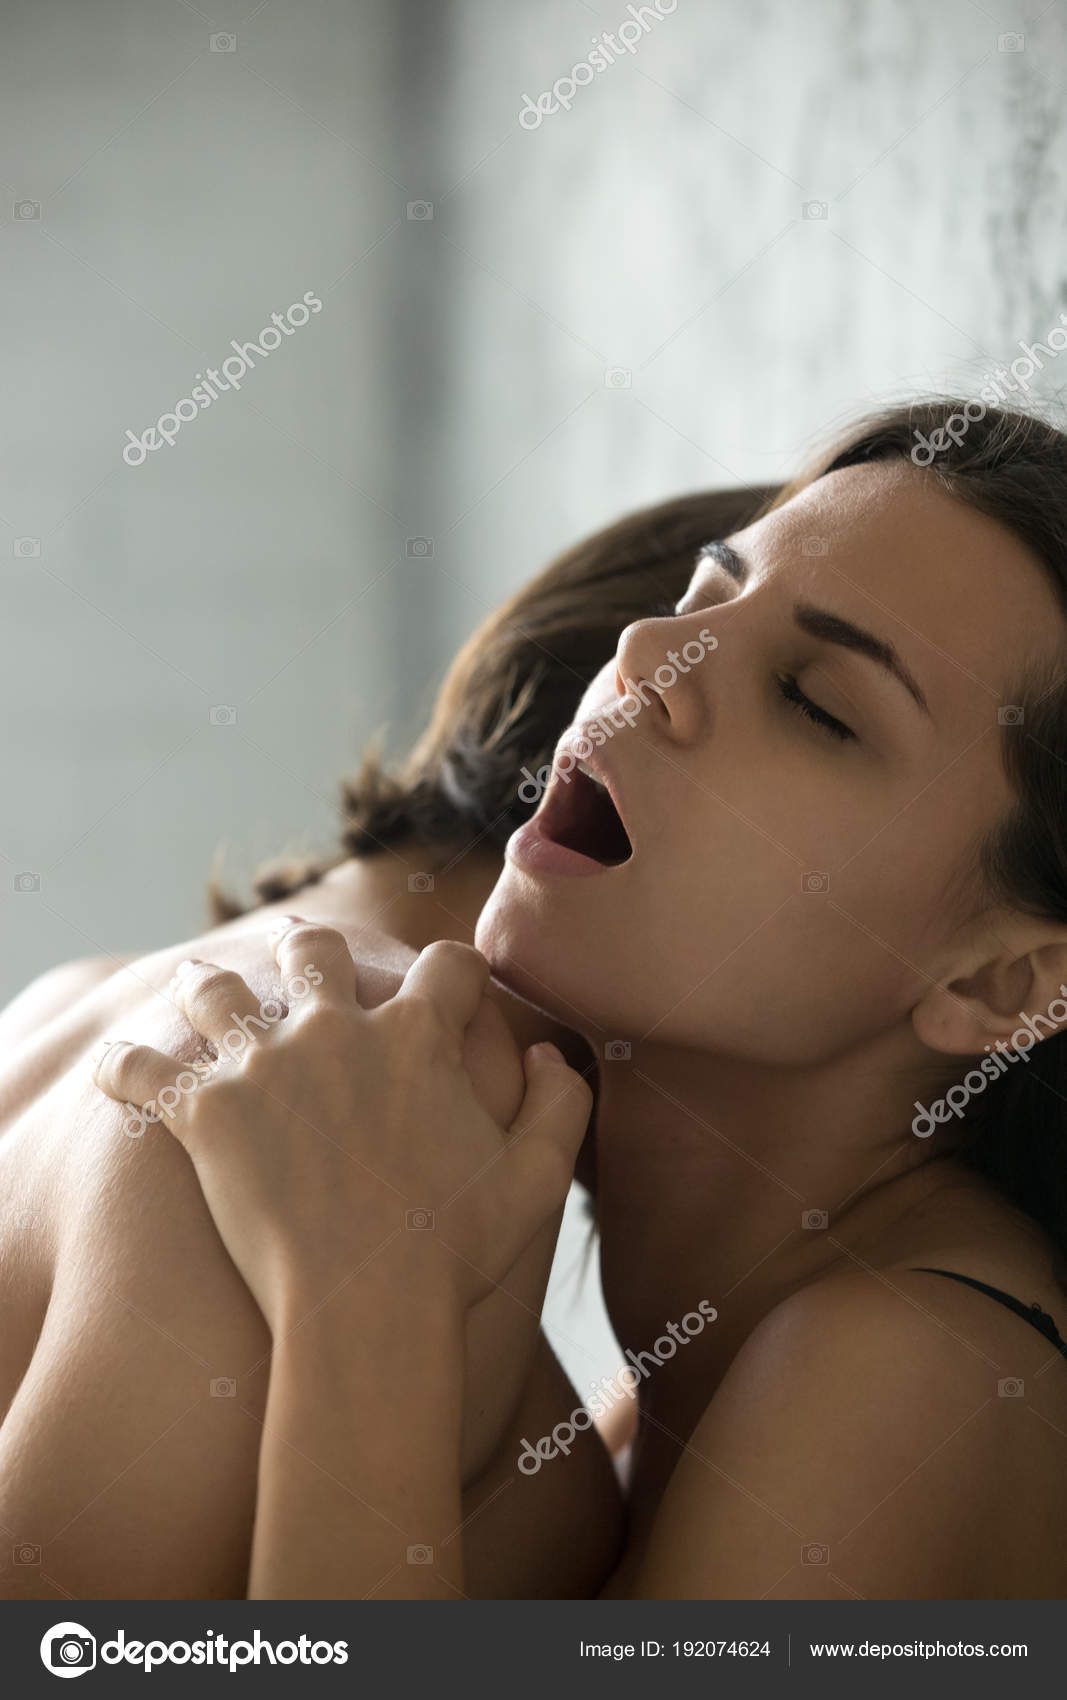 Passionate Sensual Woman Moaning Feeling Pleasure Having Sex Ve Stock Photo